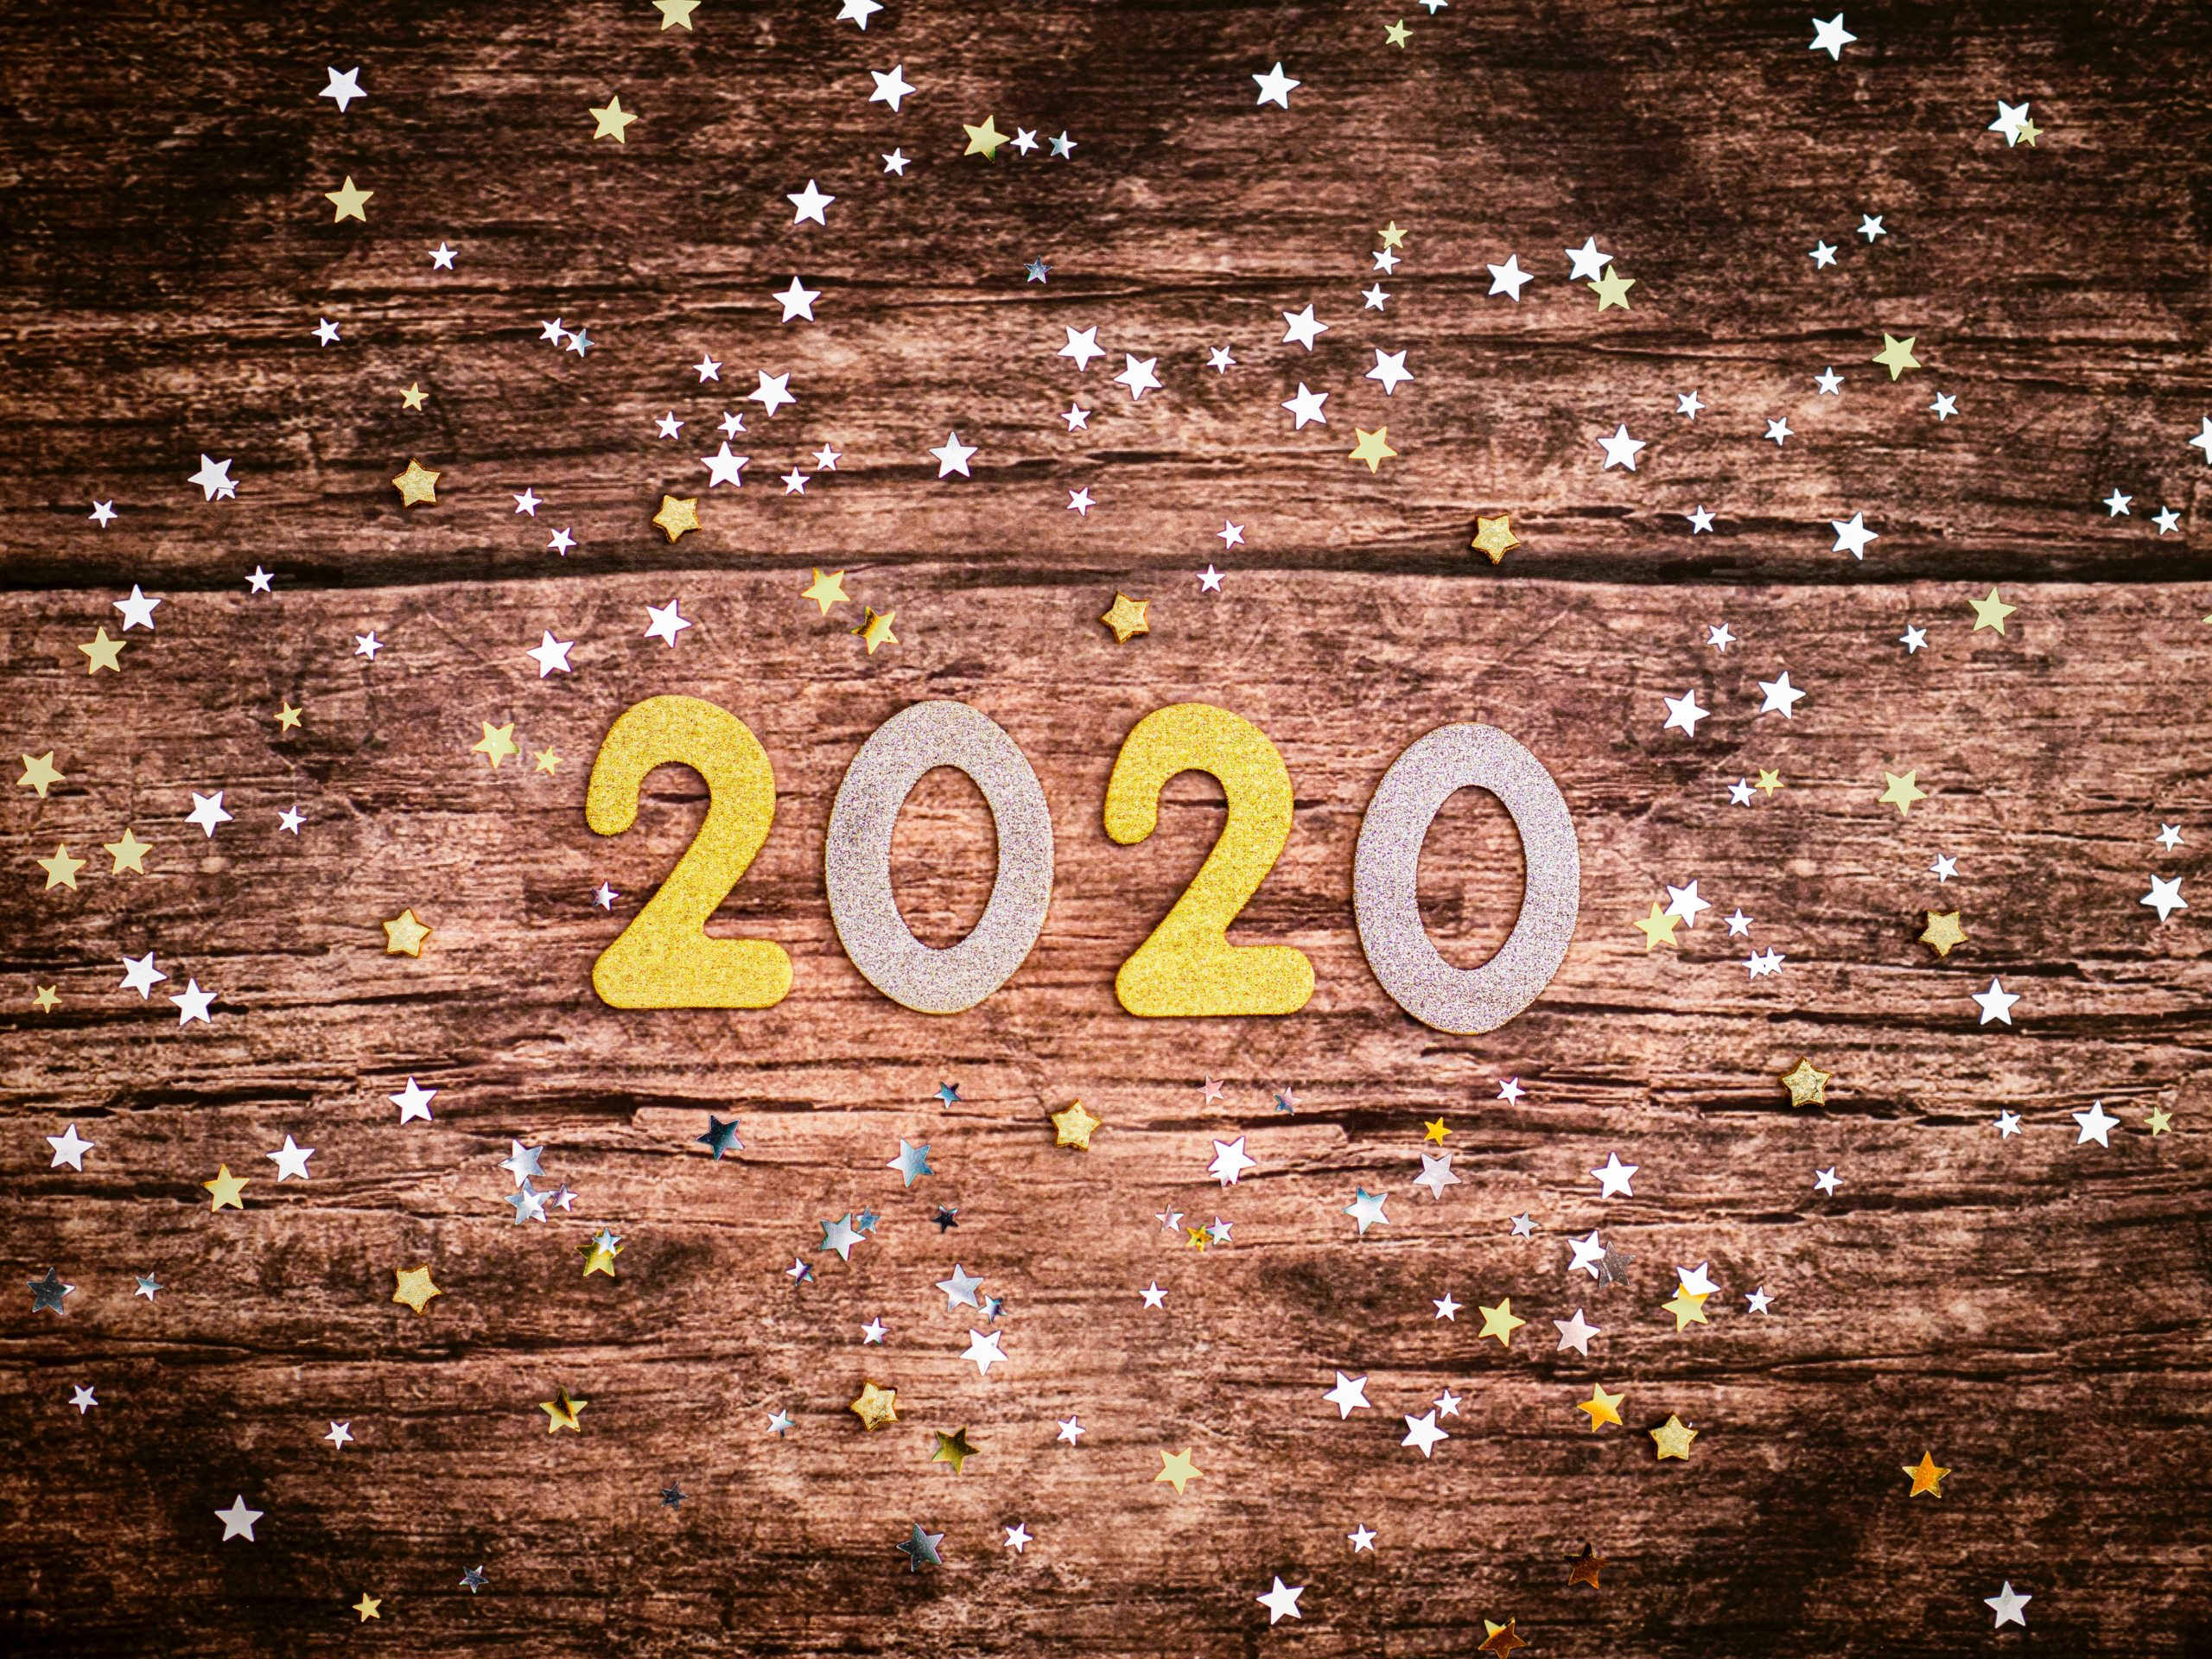 Marketing your business in 2020 Part 2